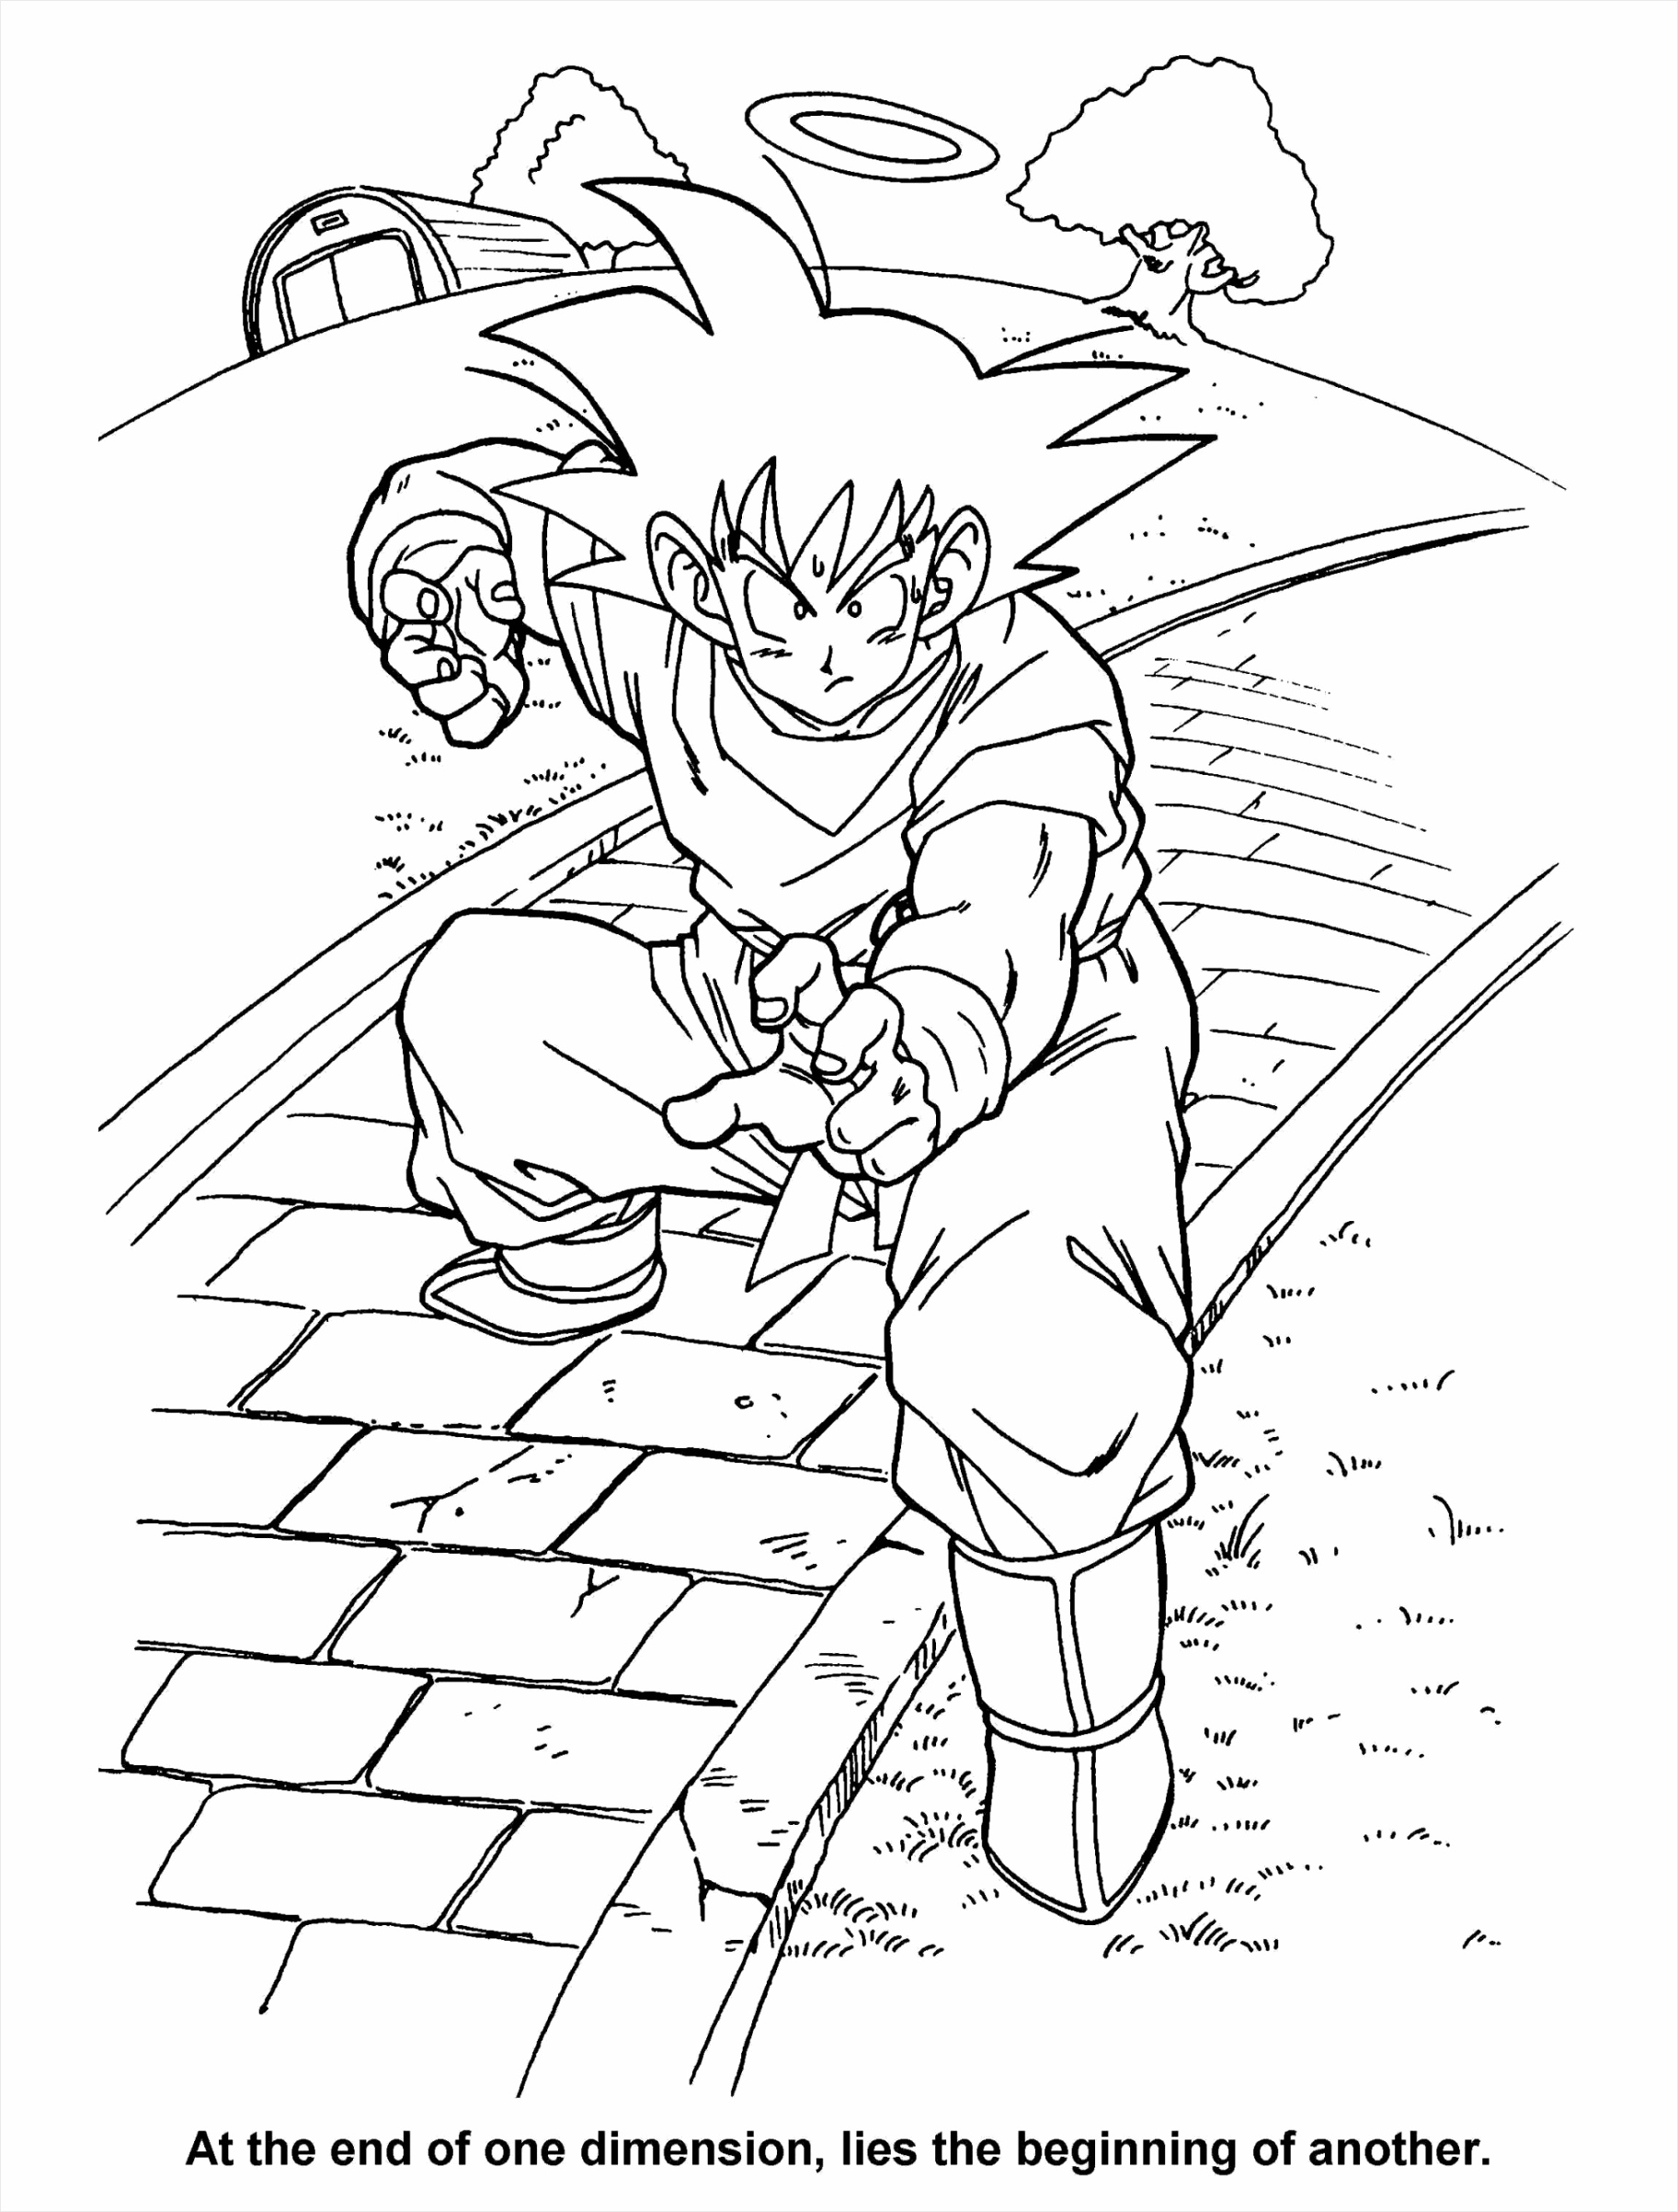 dragon ball z coloring pages super saiyan 4 luxury dragon ball z coloring pages printable your kids will love tdoew